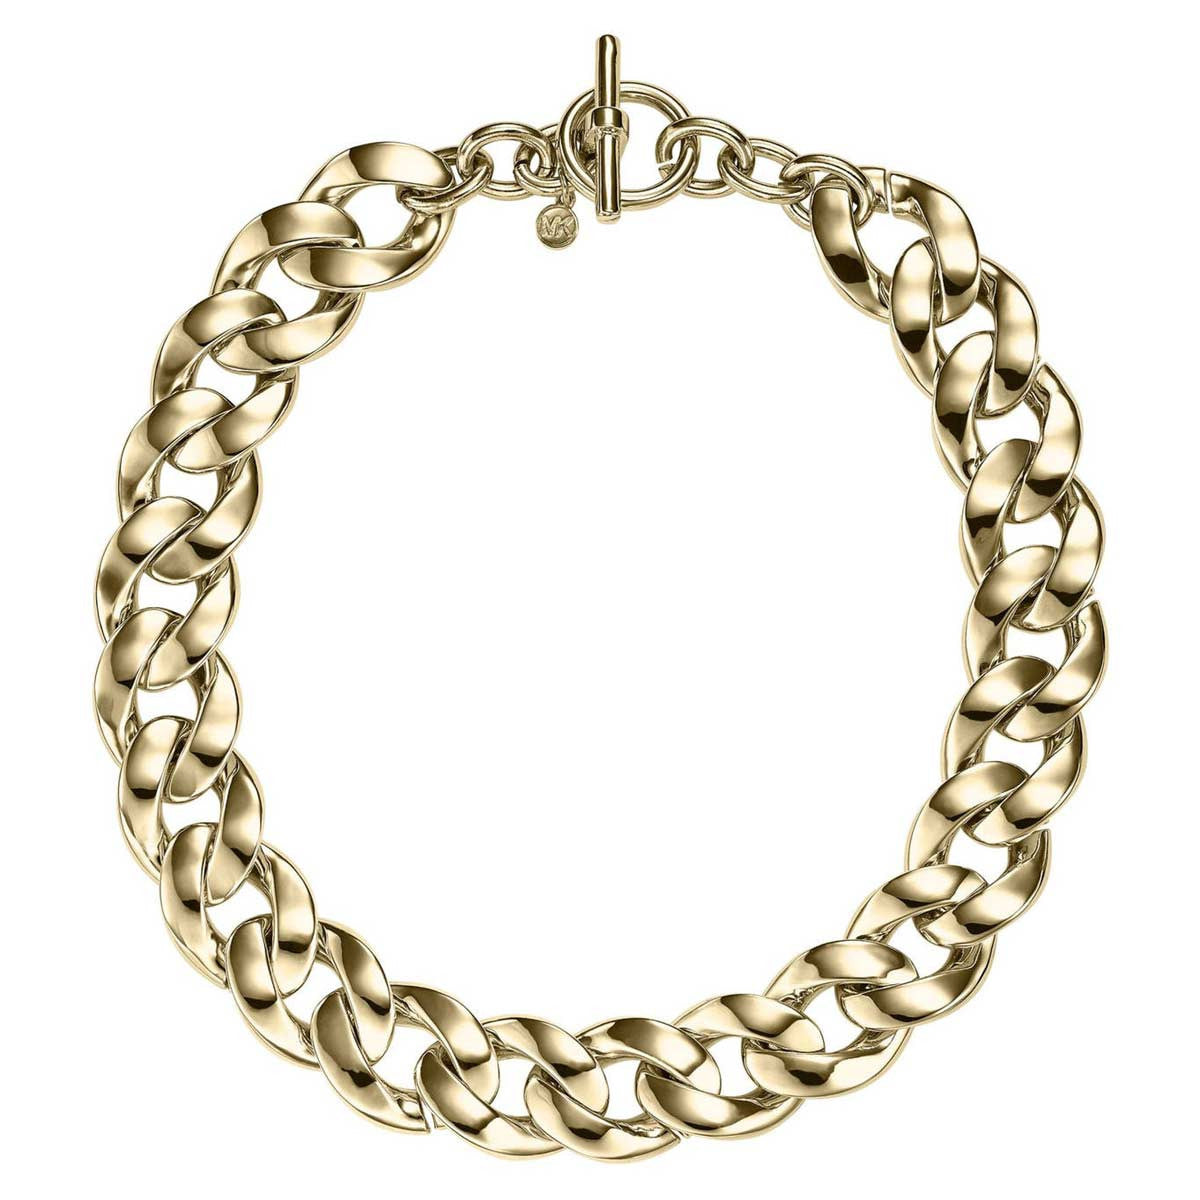 Michael Kors MKJ3815710 Women's Gold Tone Steel Curb Chain-Link Necklace